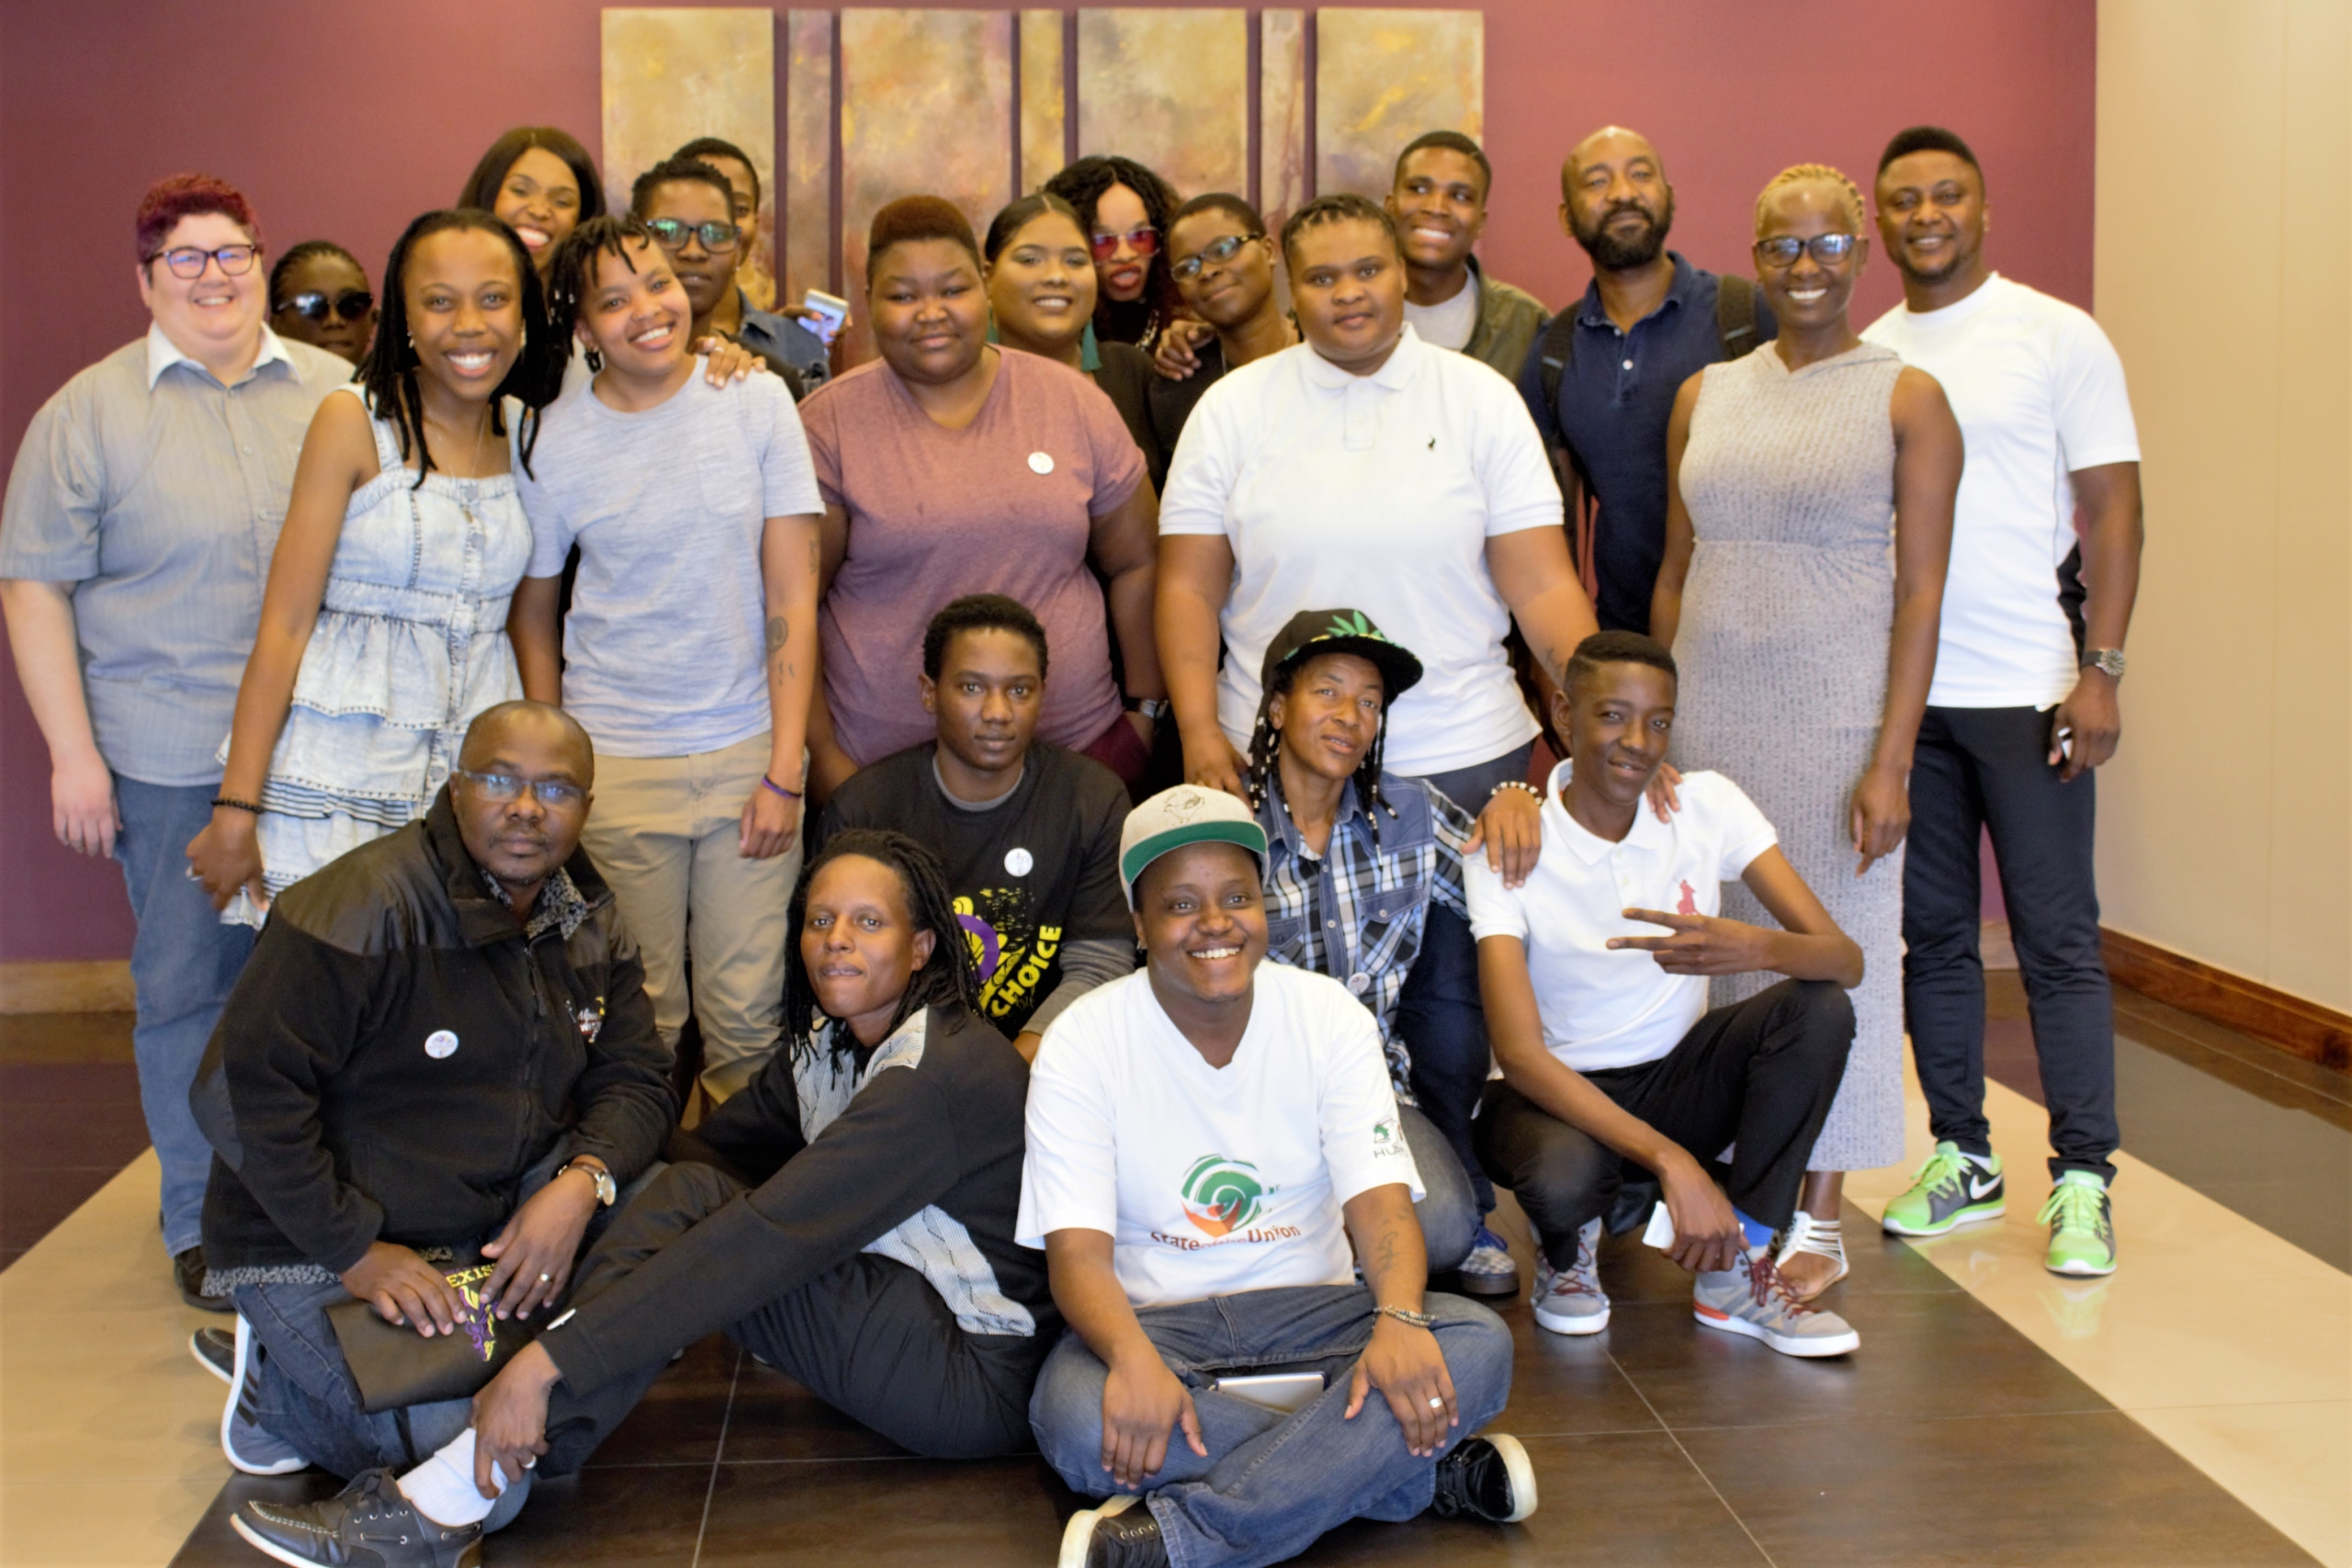 Attendees First African Intersex Meeting, Johannesburg, 2017. Photographer: unknown.